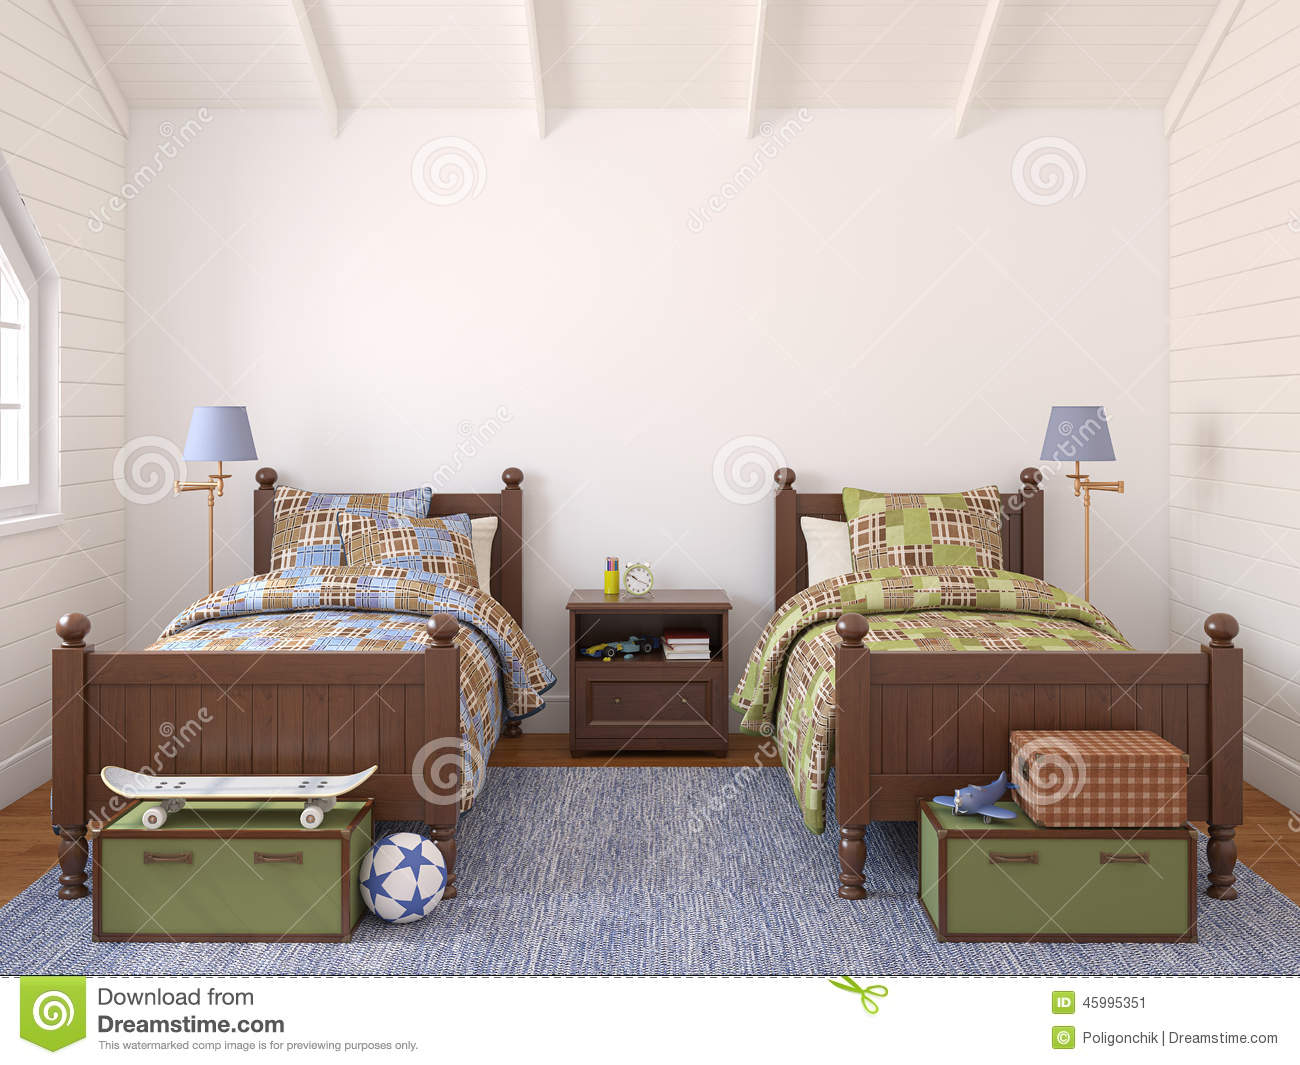 chambre coucher pour deux enfants illustration stock image 45995351. Black Bedroom Furniture Sets. Home Design Ideas